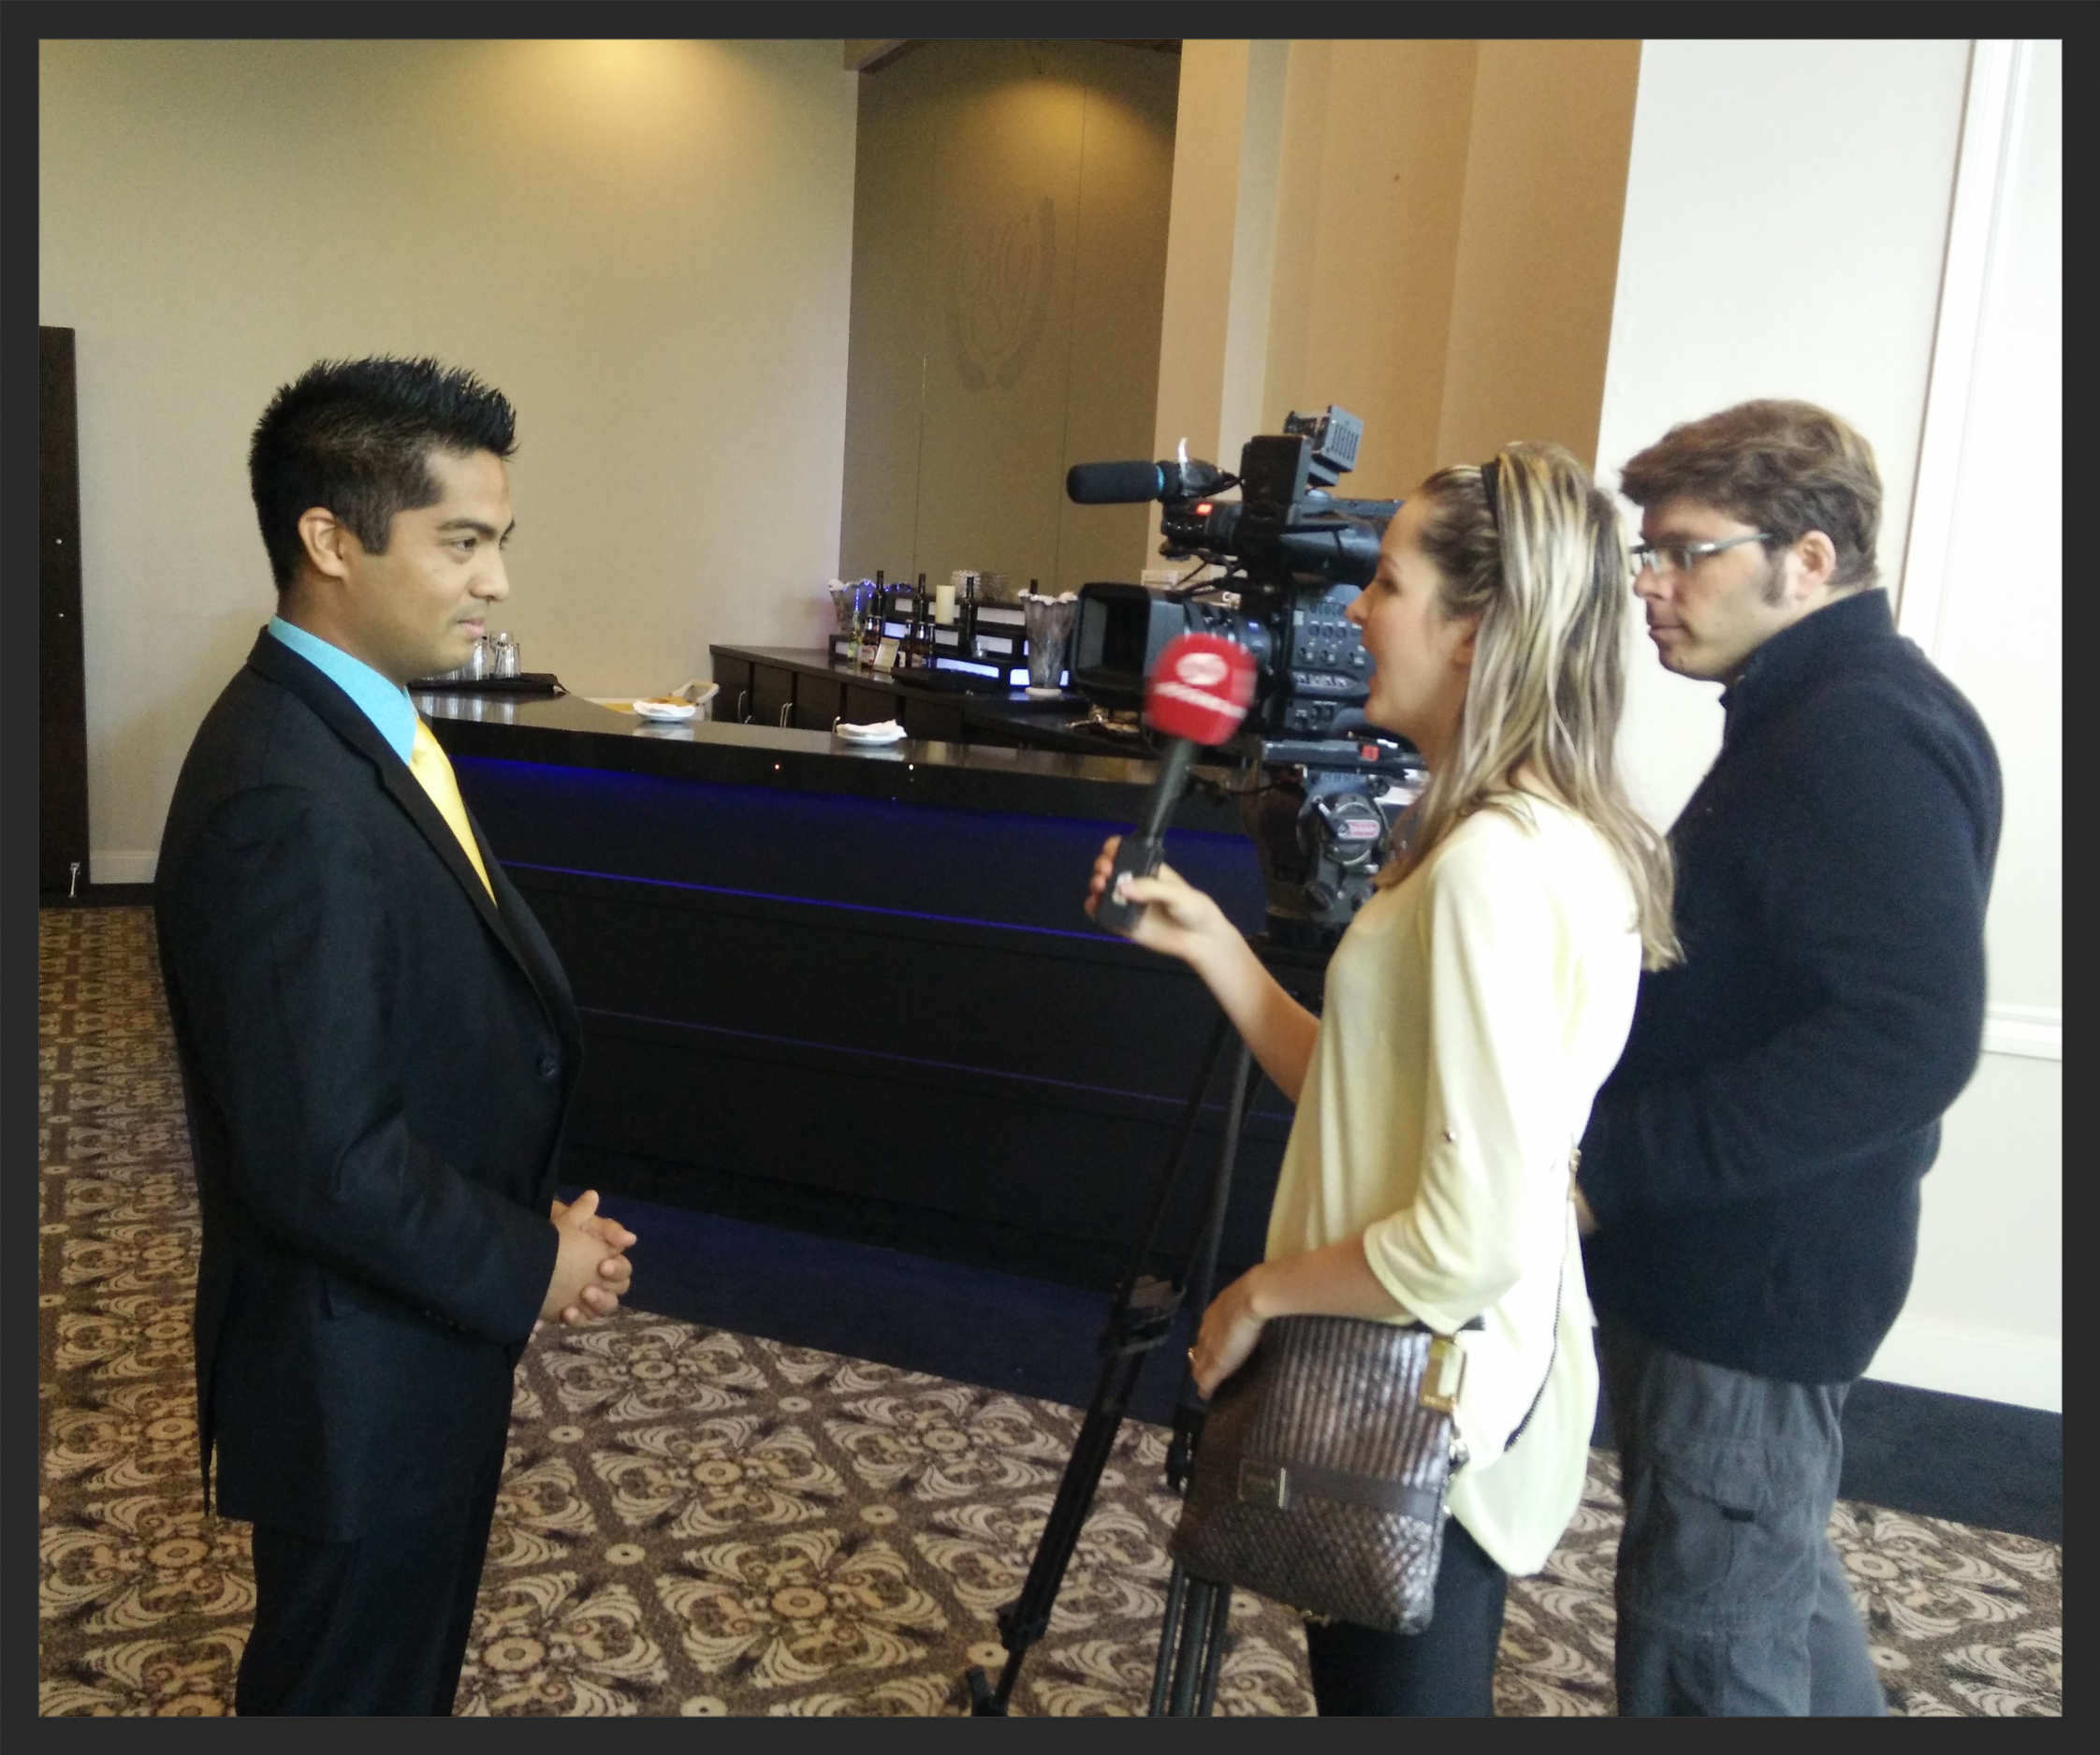 Inception Automotive Detailing Founder Lorenzo Escobal is interviewed by Rogers TV